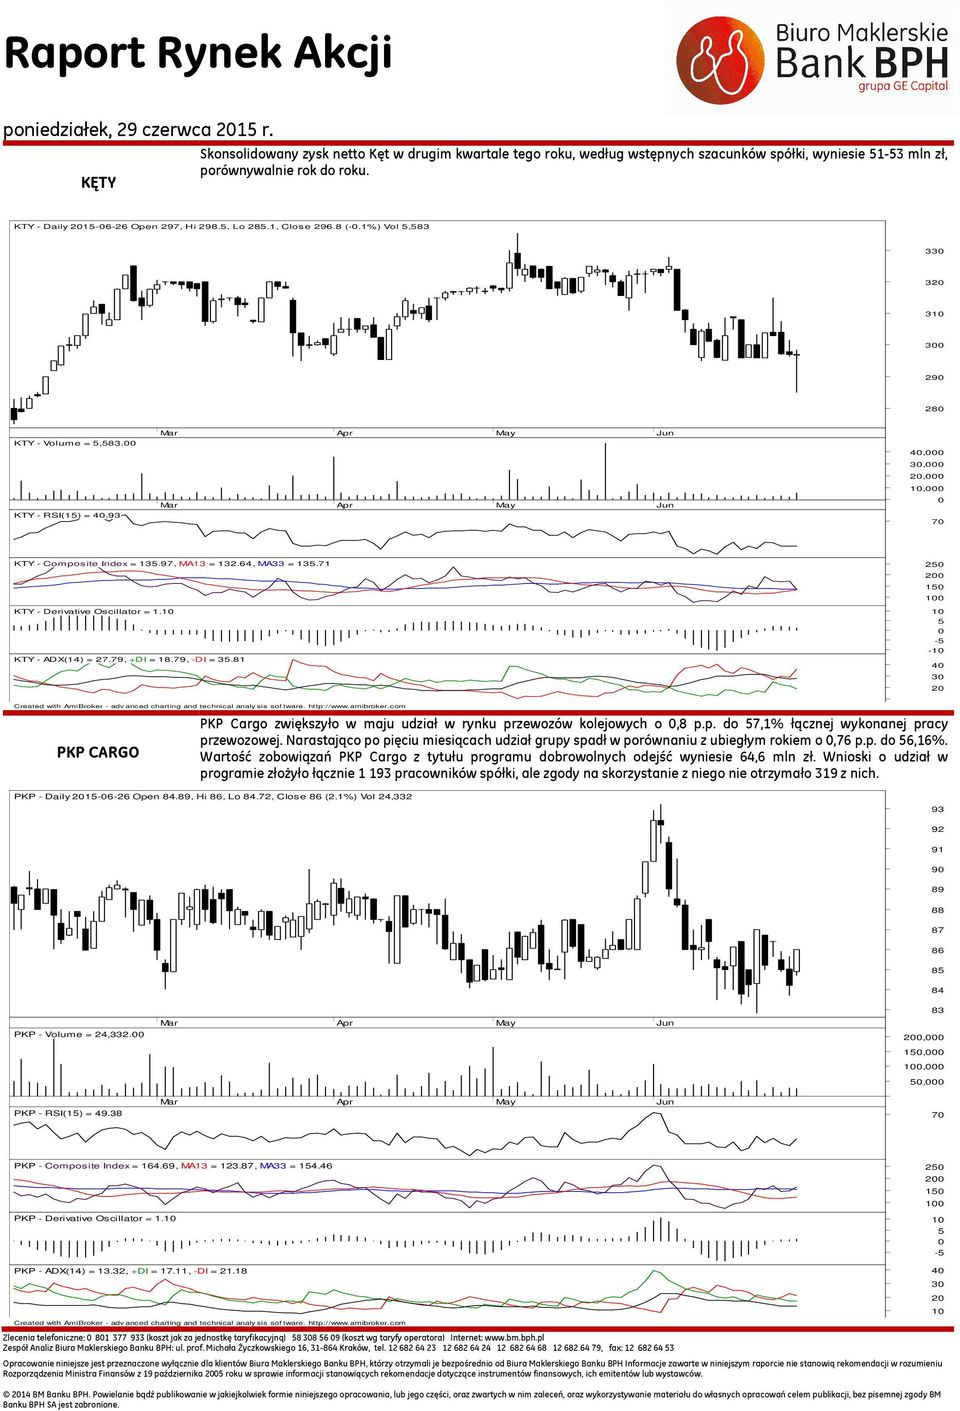 71 KTY - Derivative Oscillator = 1.1 KTY - ADX(14) = 27.79, +DI = 18.79, -DI = 3.81 2 2 1 1 1 - -1 4 3 2 Created with AmiBroker - advanced charting and technical analy sis sof tware. http://www.